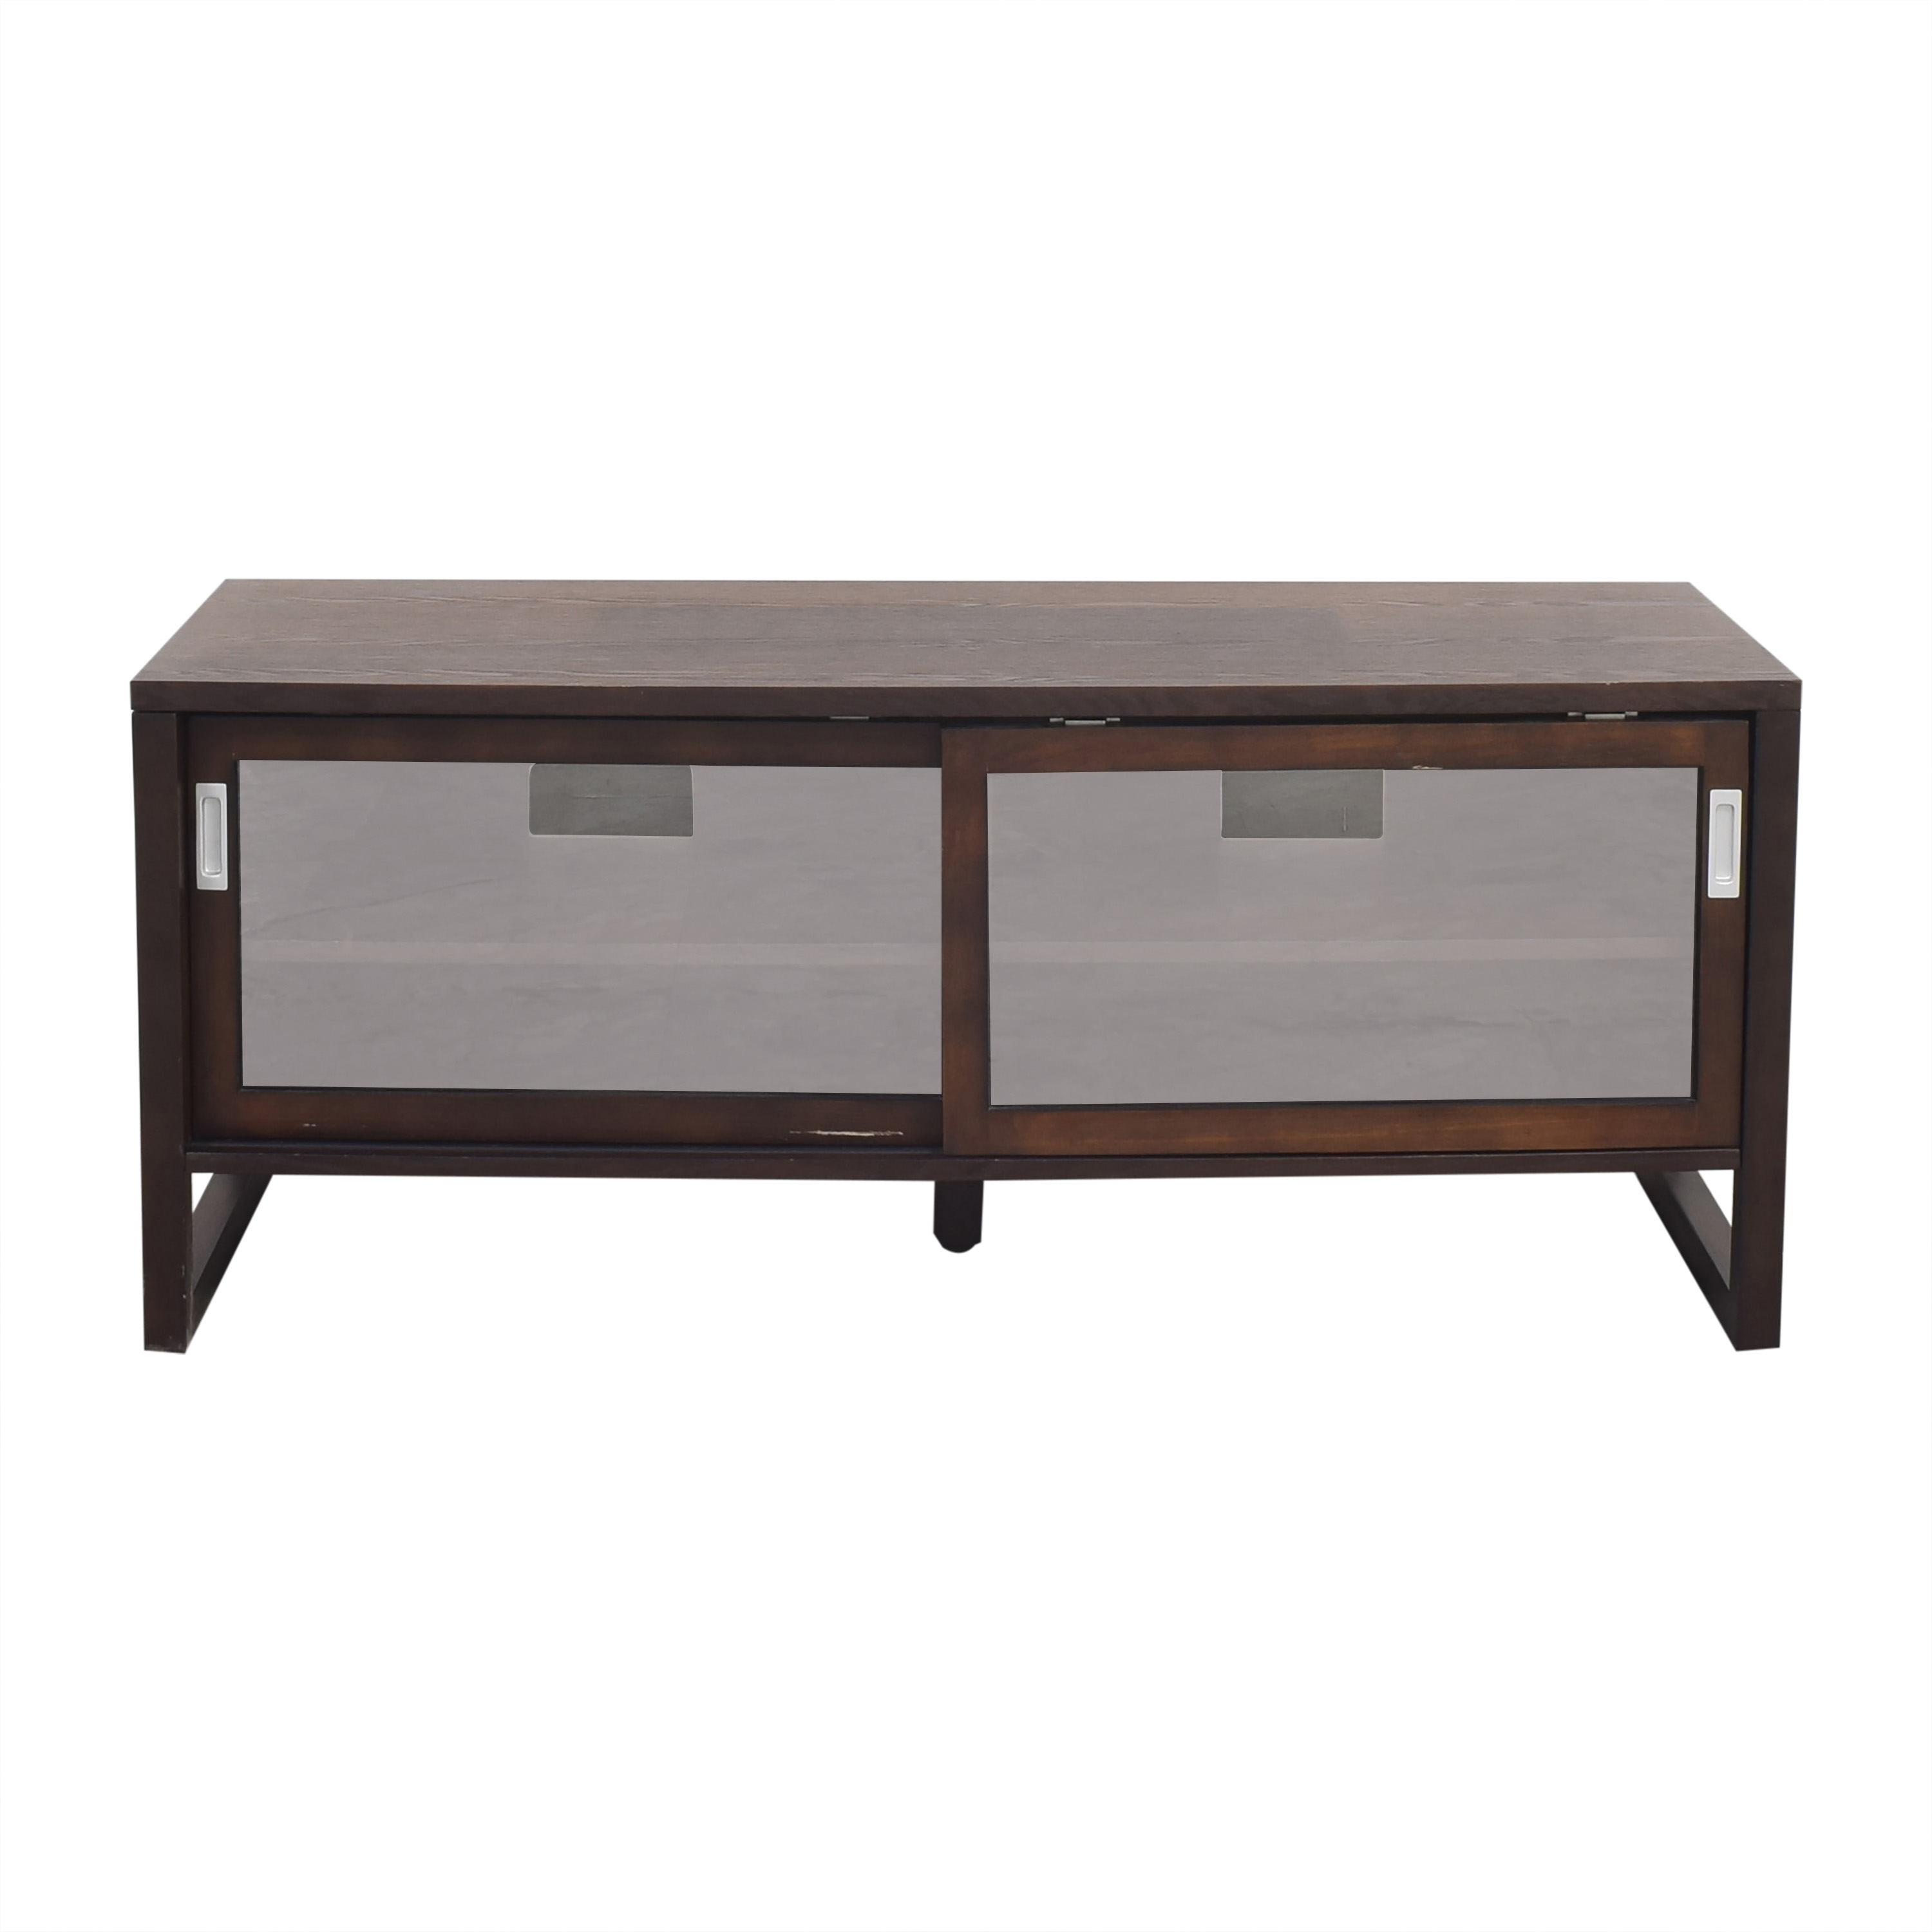 Crate & Barrel Crate & Barrel Sliding Door Media Console pa